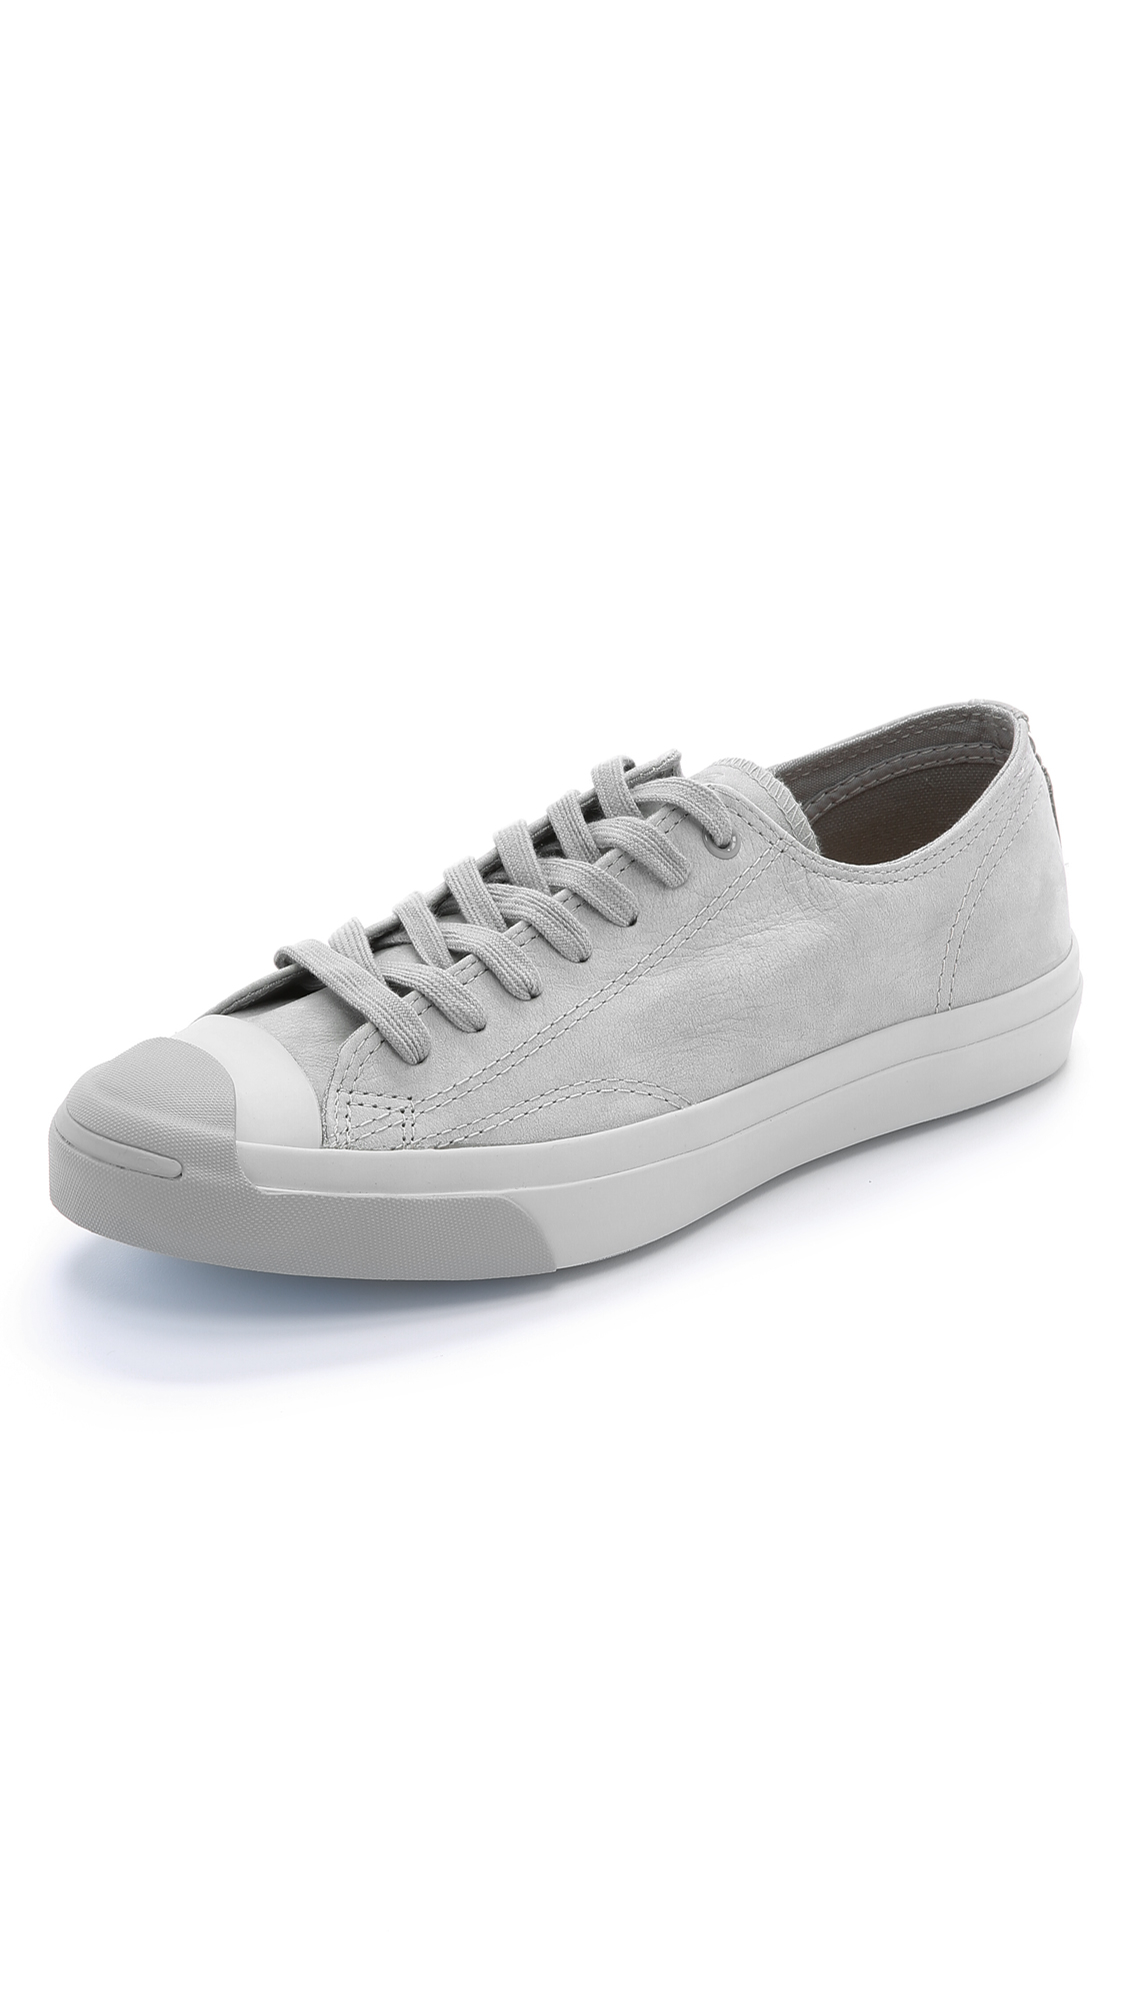 6298c08e9425ba Lyst - Converse Jack Purcell Jack Nubuck Sneakers in Gray for Men